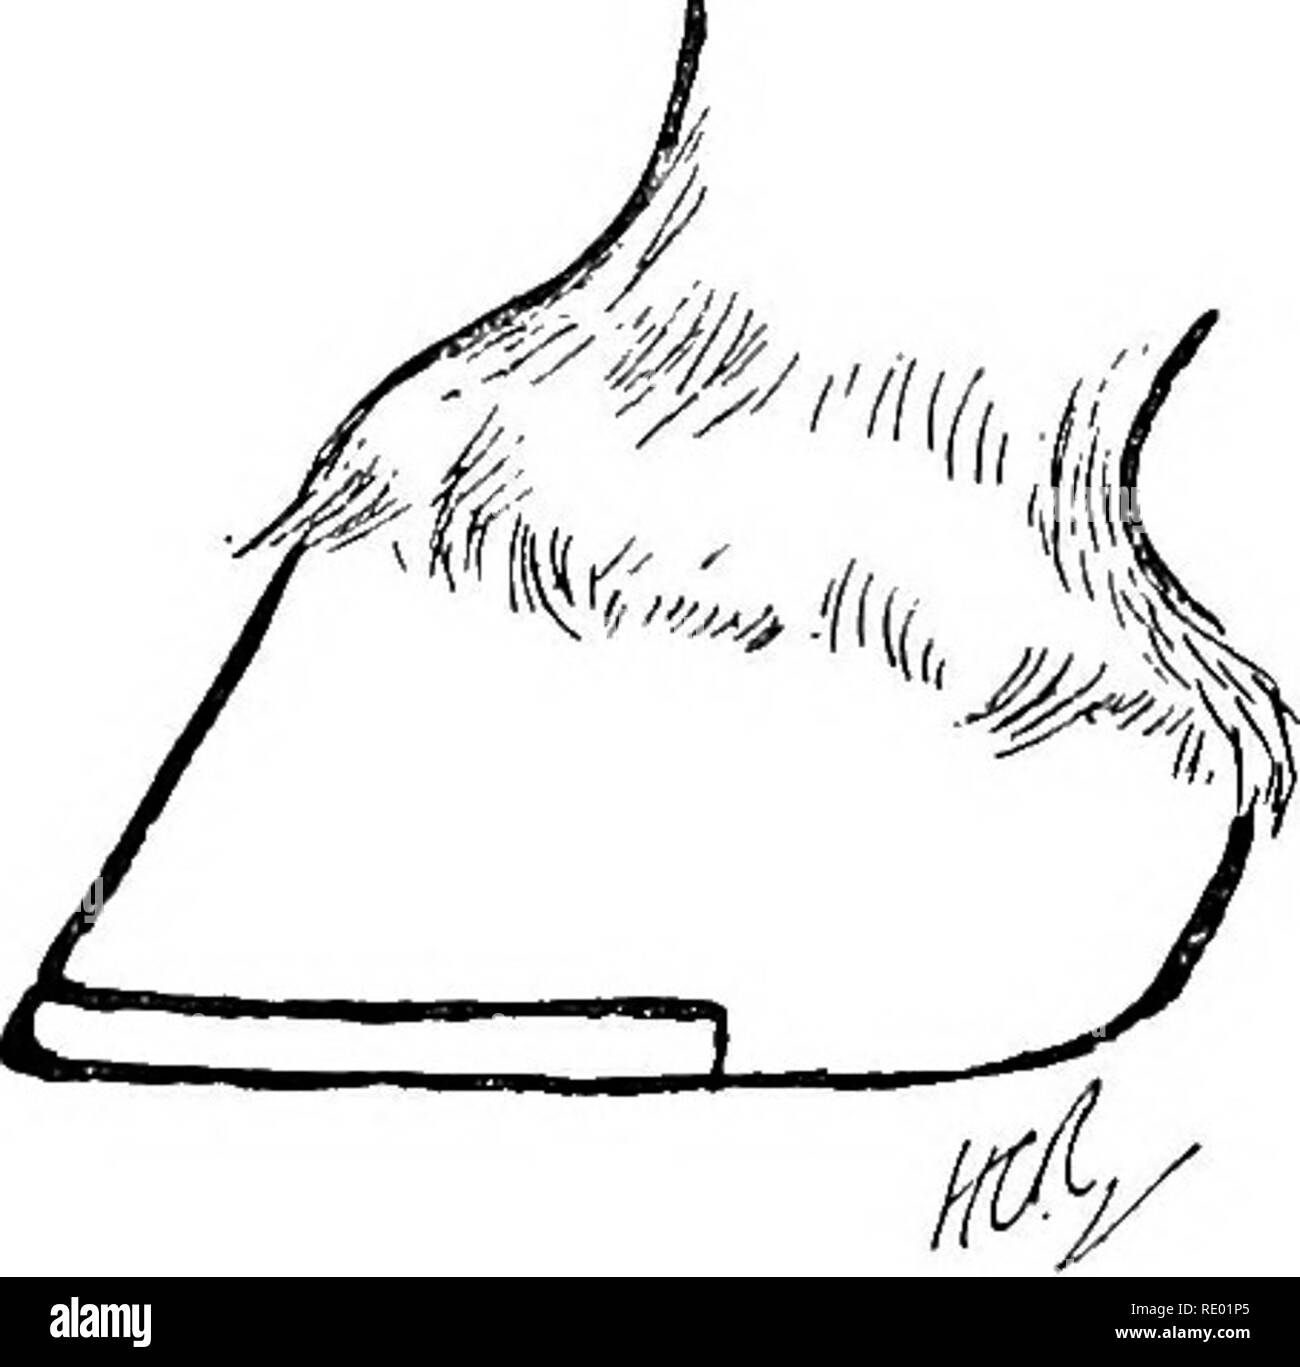 . Diseases of the horse's foot . Hoofs; Horses. 126 DISEASES OP THE HOESE'S FOOT shoe, the appHcation of a tip is simple. In reahty, the tip is just an ordinary shoe shortened by truncating the heels. Before applying the tip, the horn of the wall at the toe should be shortened sufficiently to prevent any undue obliquity of the hoof, and the foot should be so prepared as to allow the heels of the tip to sink flush with the bearing edge of the wall behind it. When the foot does not allow of the removal of much horn at the toe, what is termed a ' thinned' tip is to be preferred. Its shape is suff - Stock Image